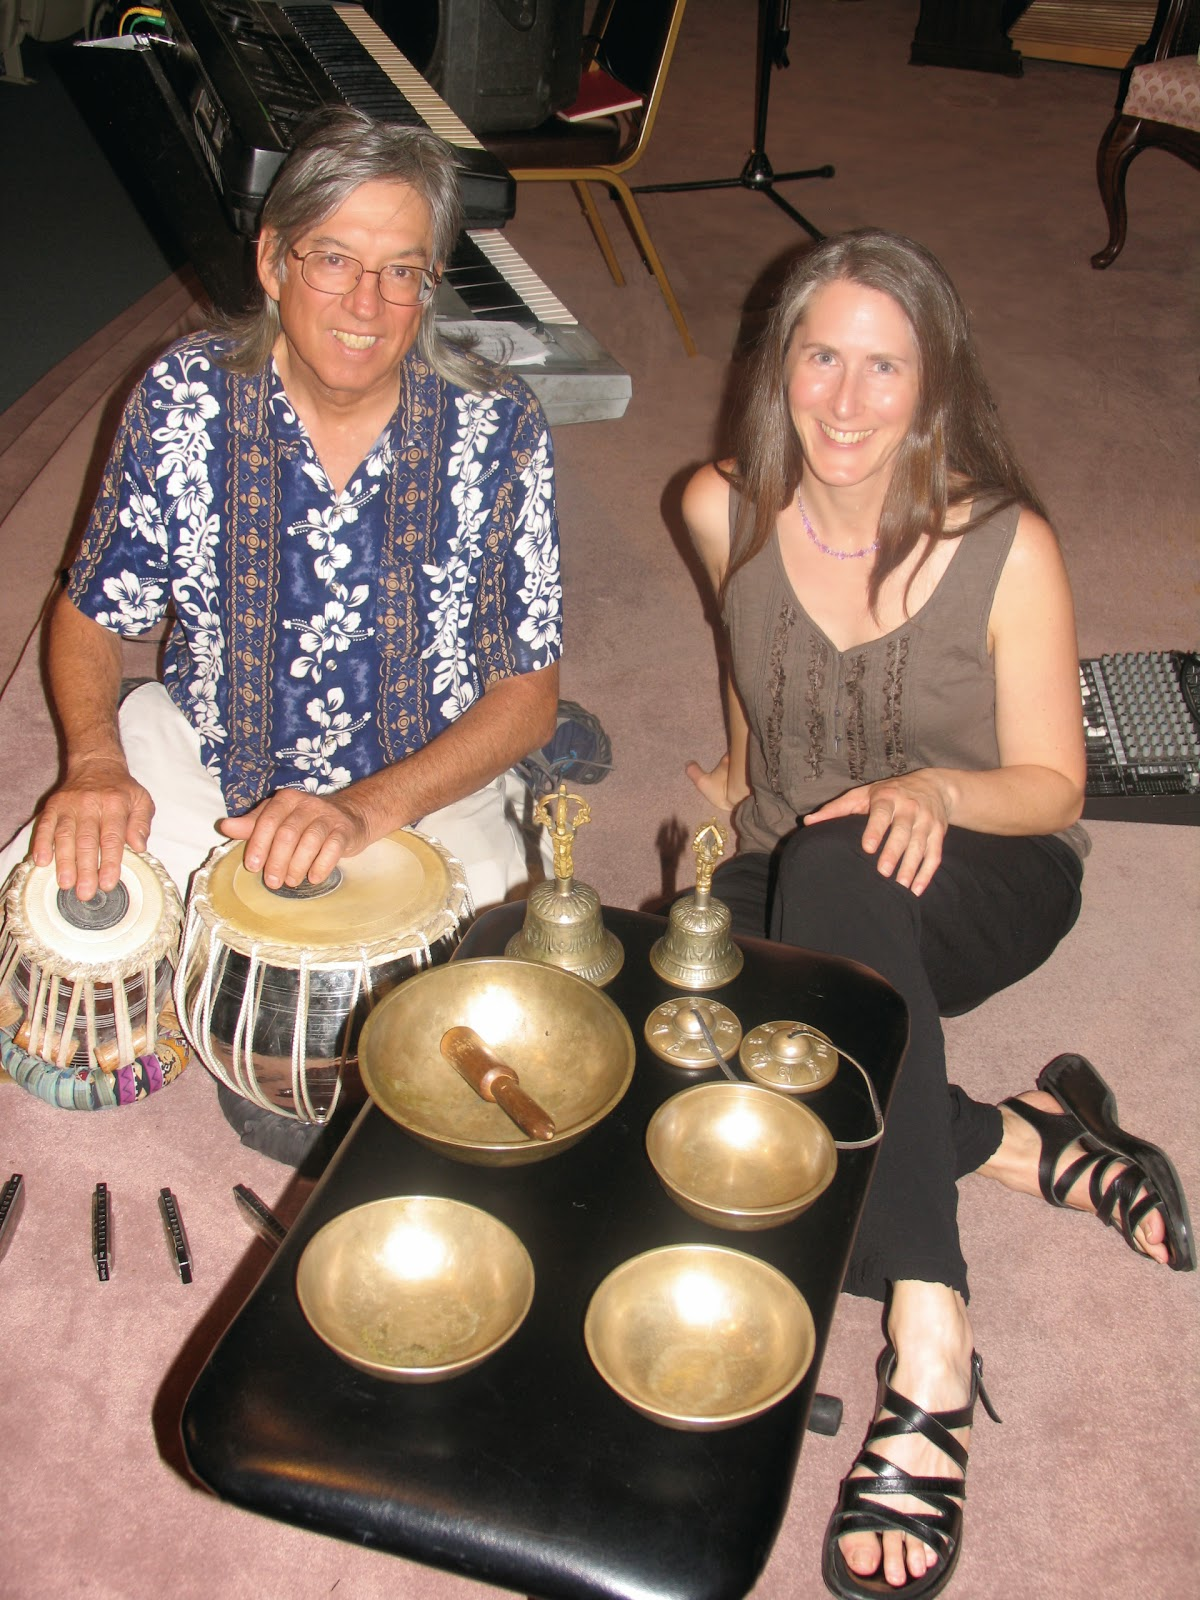 Anton Mizerak and Laura Berryhill Perform in San Clemente